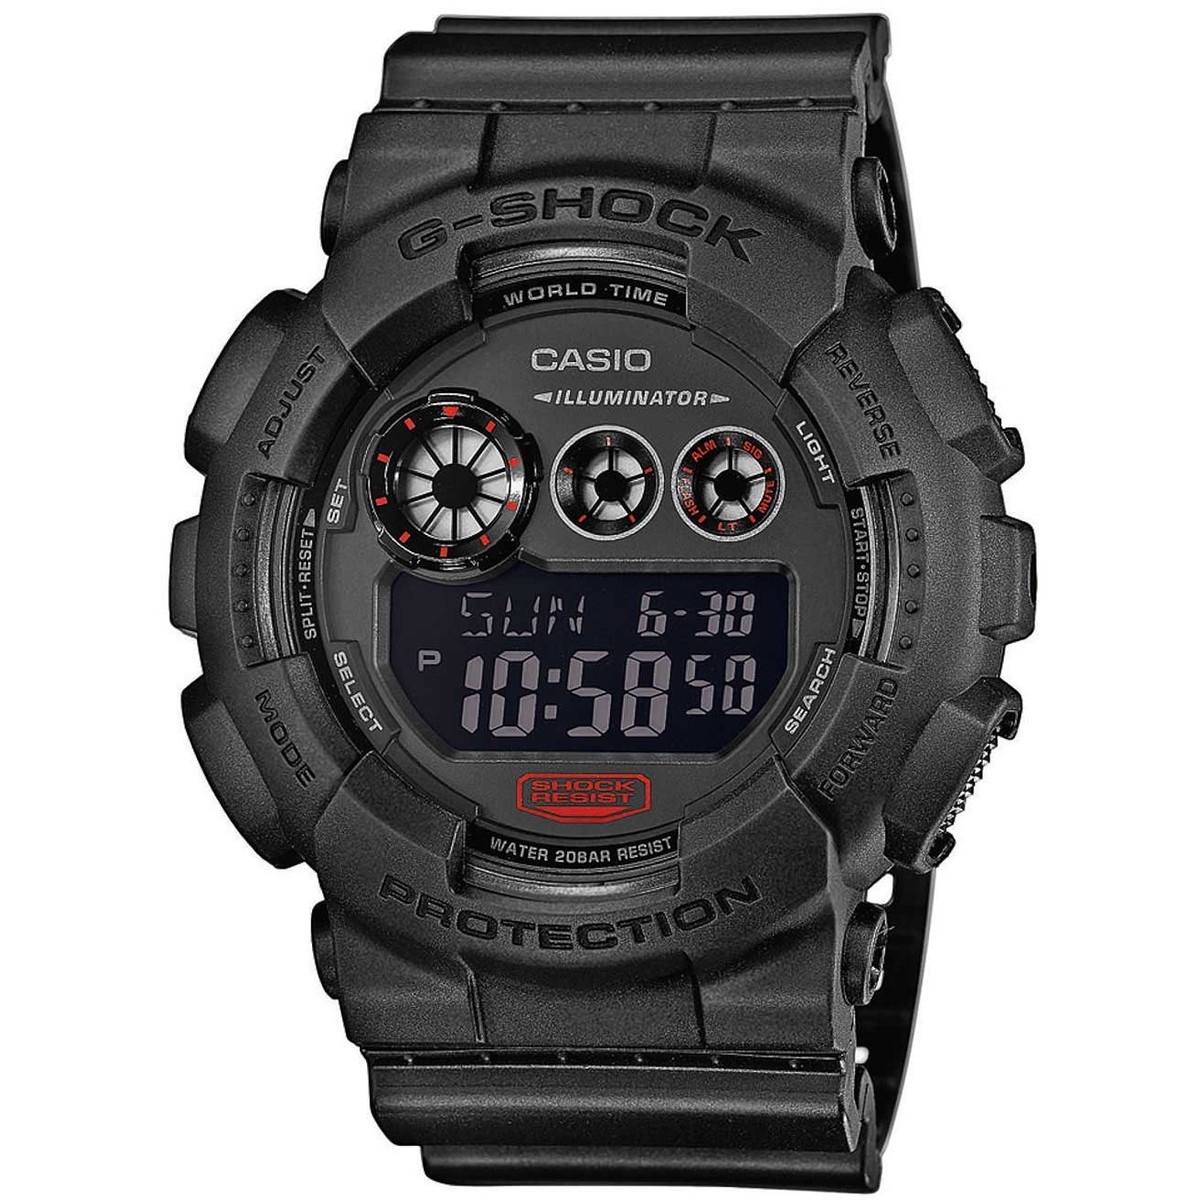 Ceas barbatesc Casio G-Shock GD-120MB-1ER original de mana